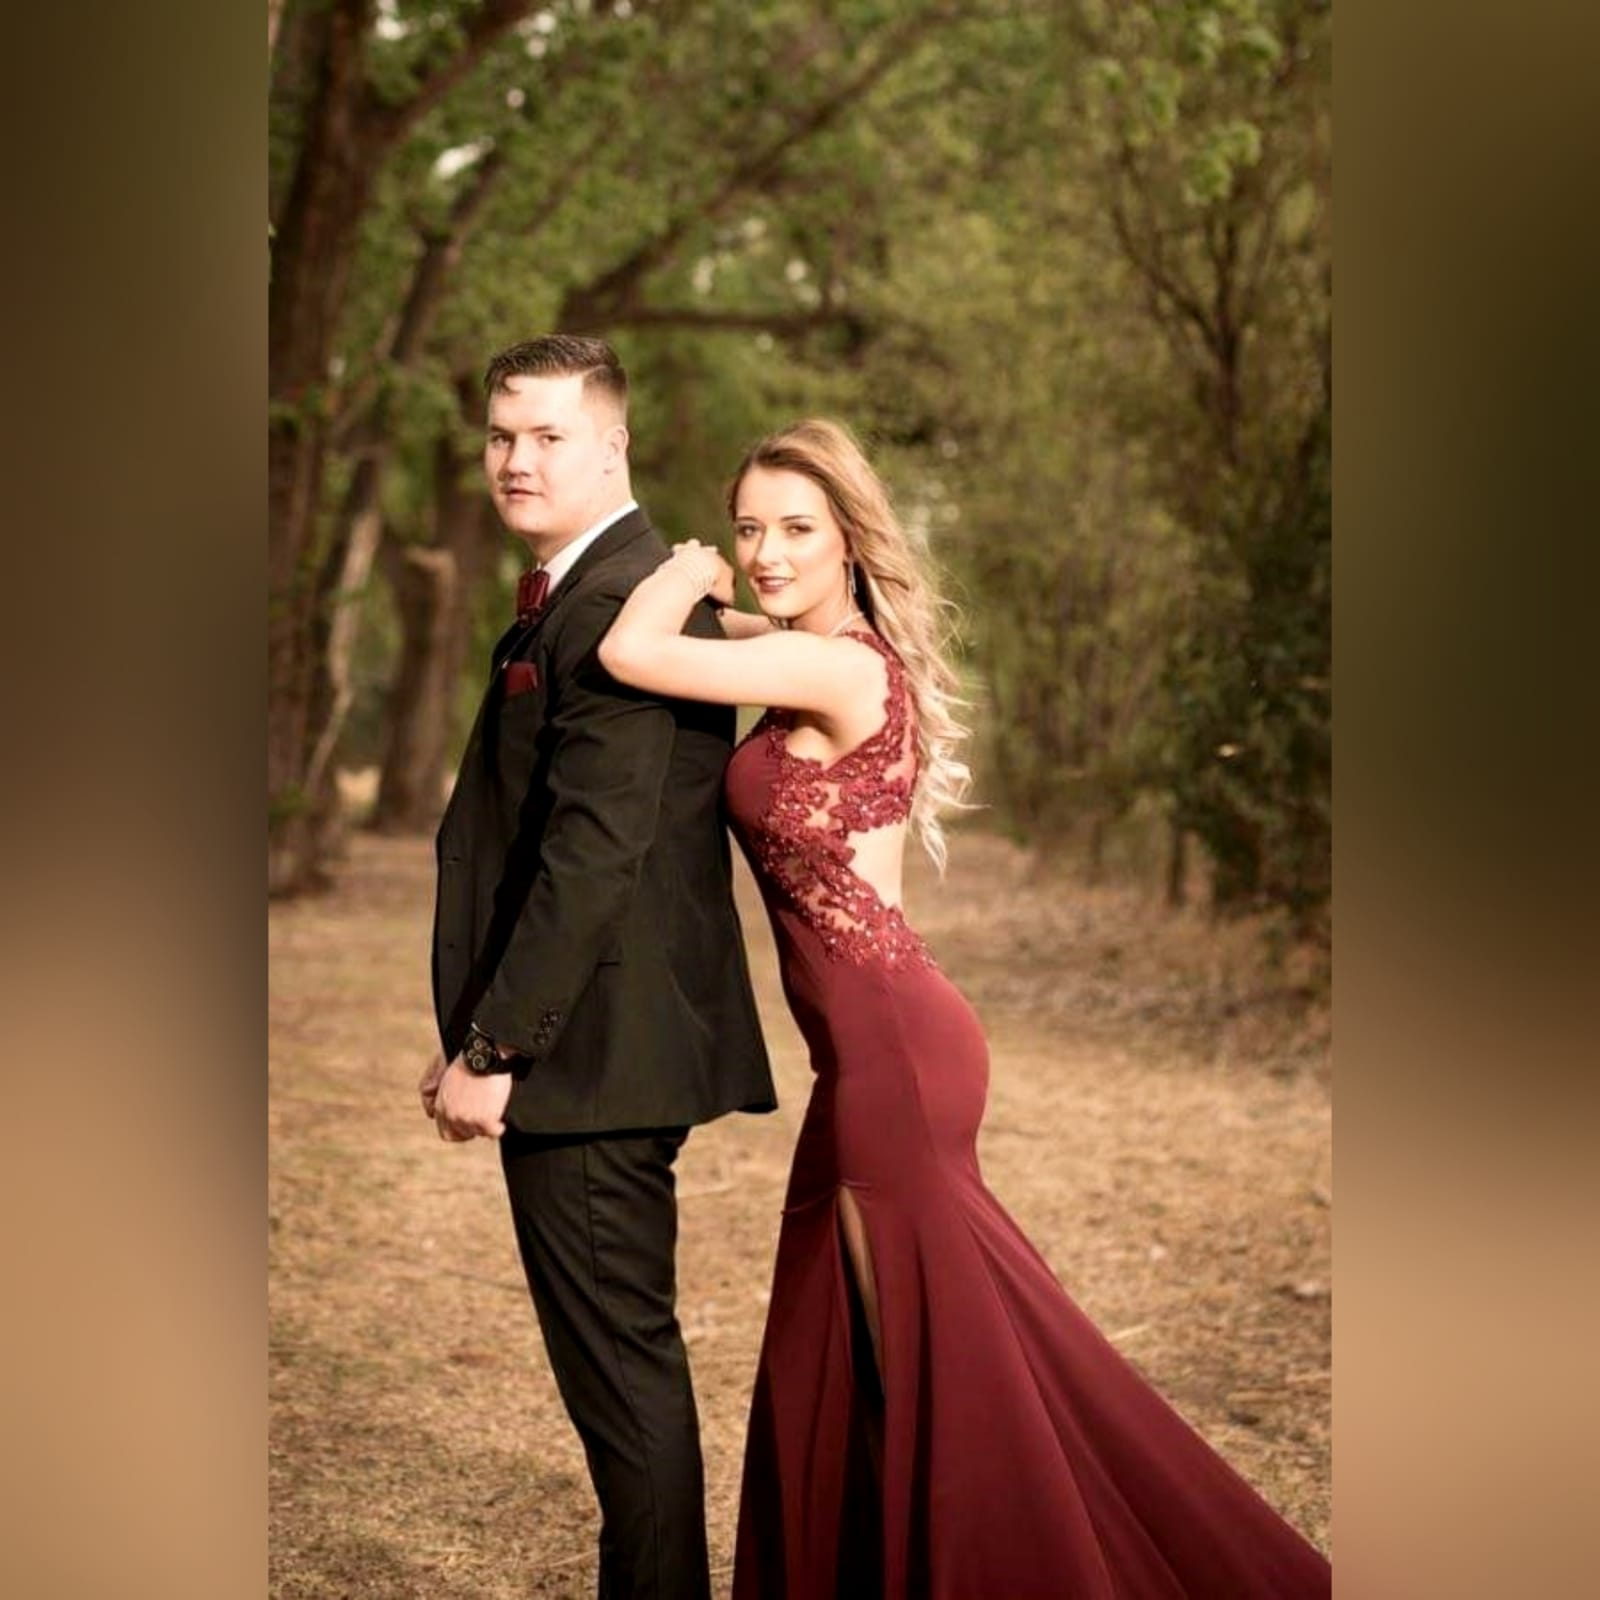 Burgundy long sexy matric farewell dress 1 burgundy long sexy matric farewell dress with an illusion lace low back and side tummy. Sweetheart neckline detailed with lace. With a slit and a train.